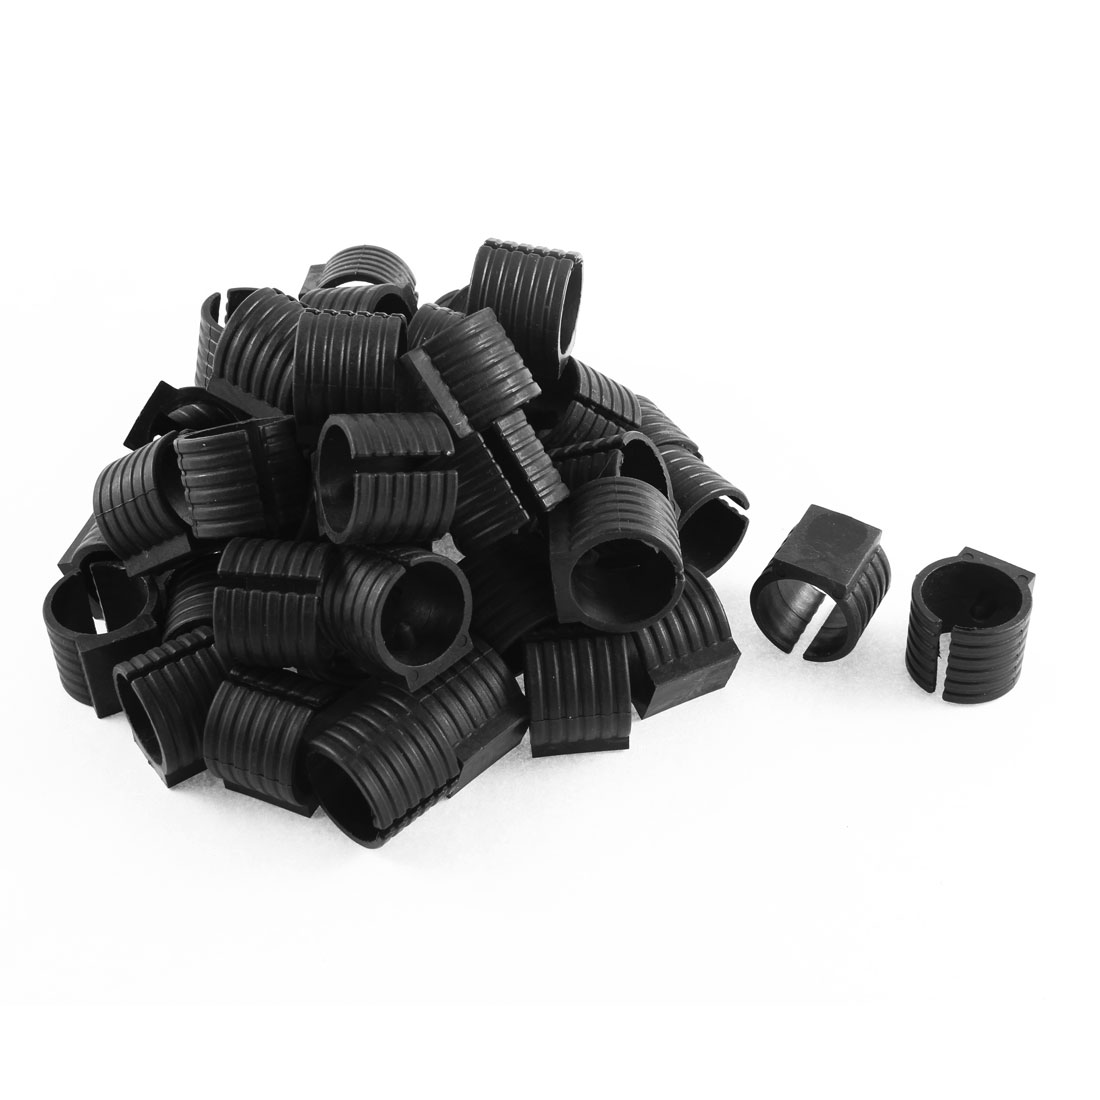 Chair Tubing Foot Floor Glides Single Prong Round U Shaped Plastic Caps 25mm Dia 50 Pcs